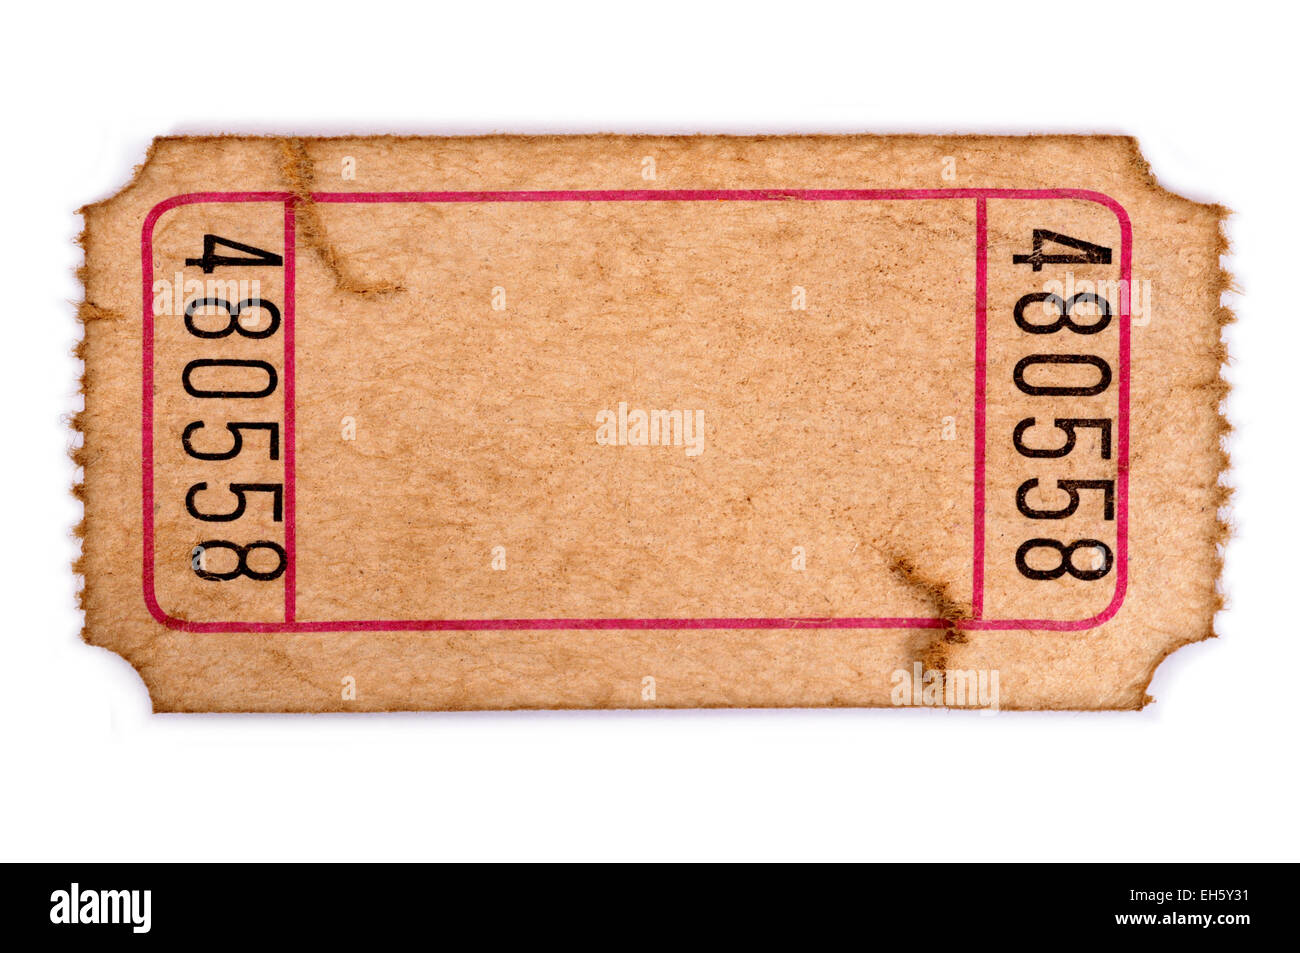 old torn blank movie or raffle ticket isolated on a white background